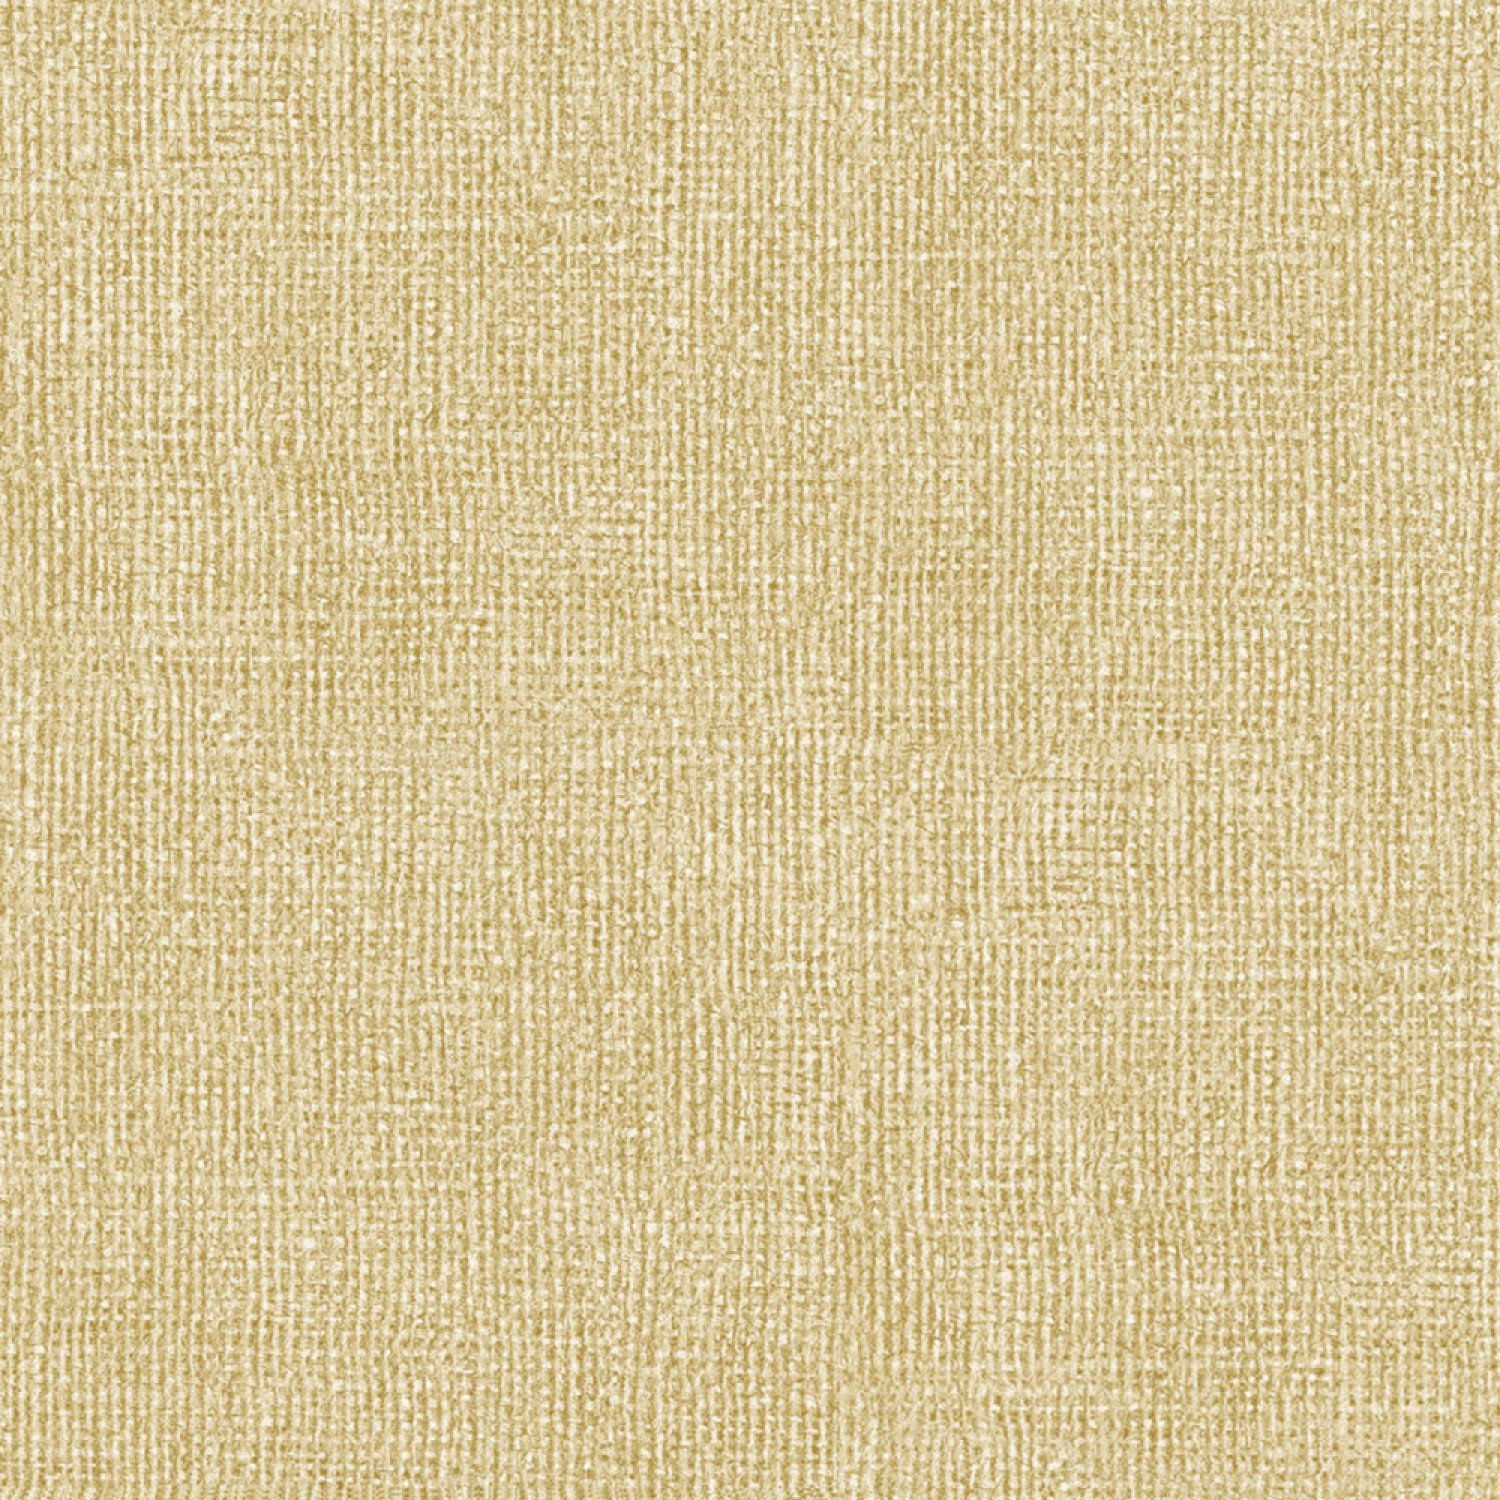 Burlap quilting cottons yellow